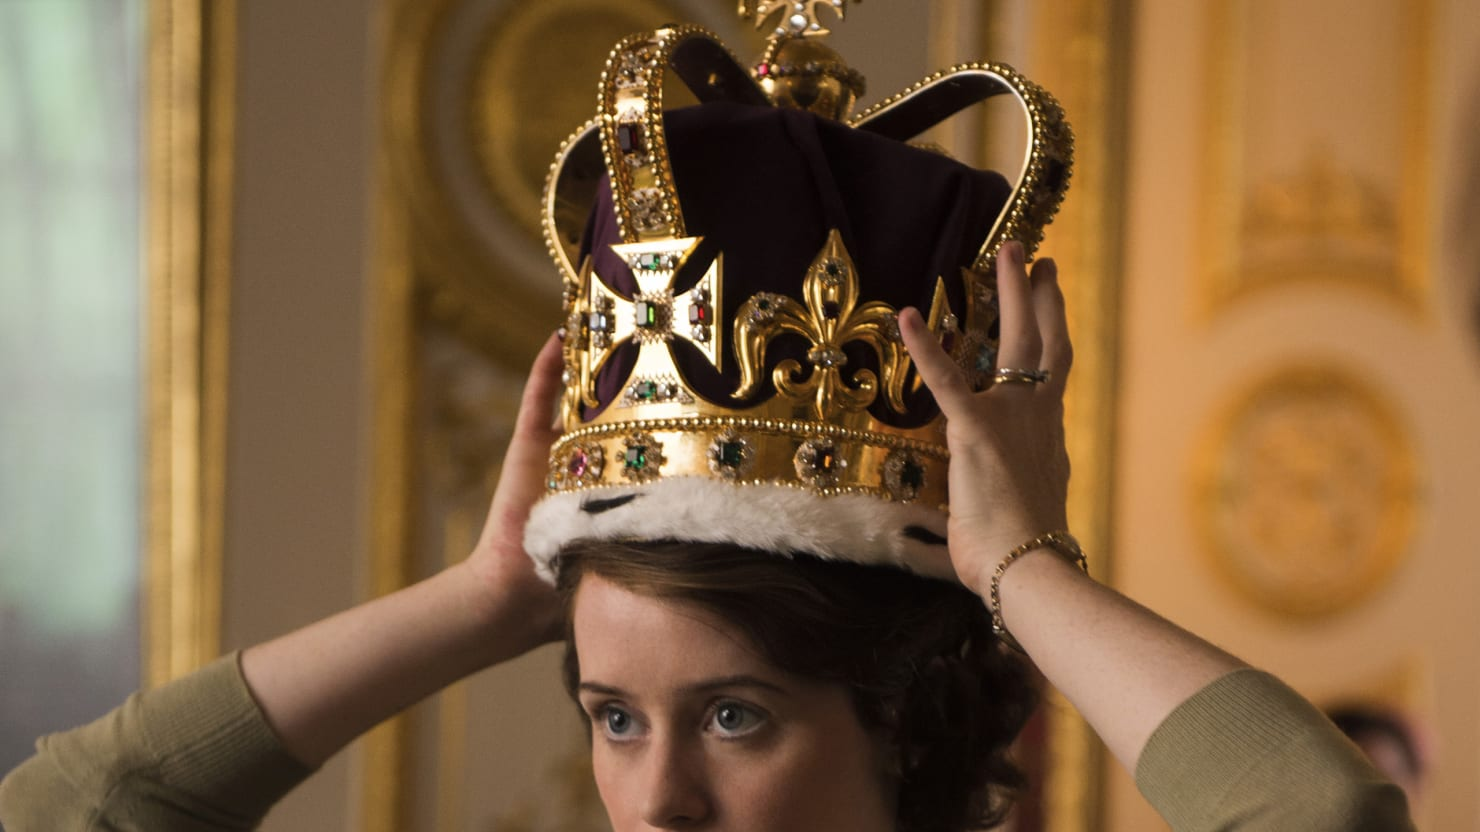 Netflixs The Crown and the Heartbreak That Made the Queens Sister Go Rogue